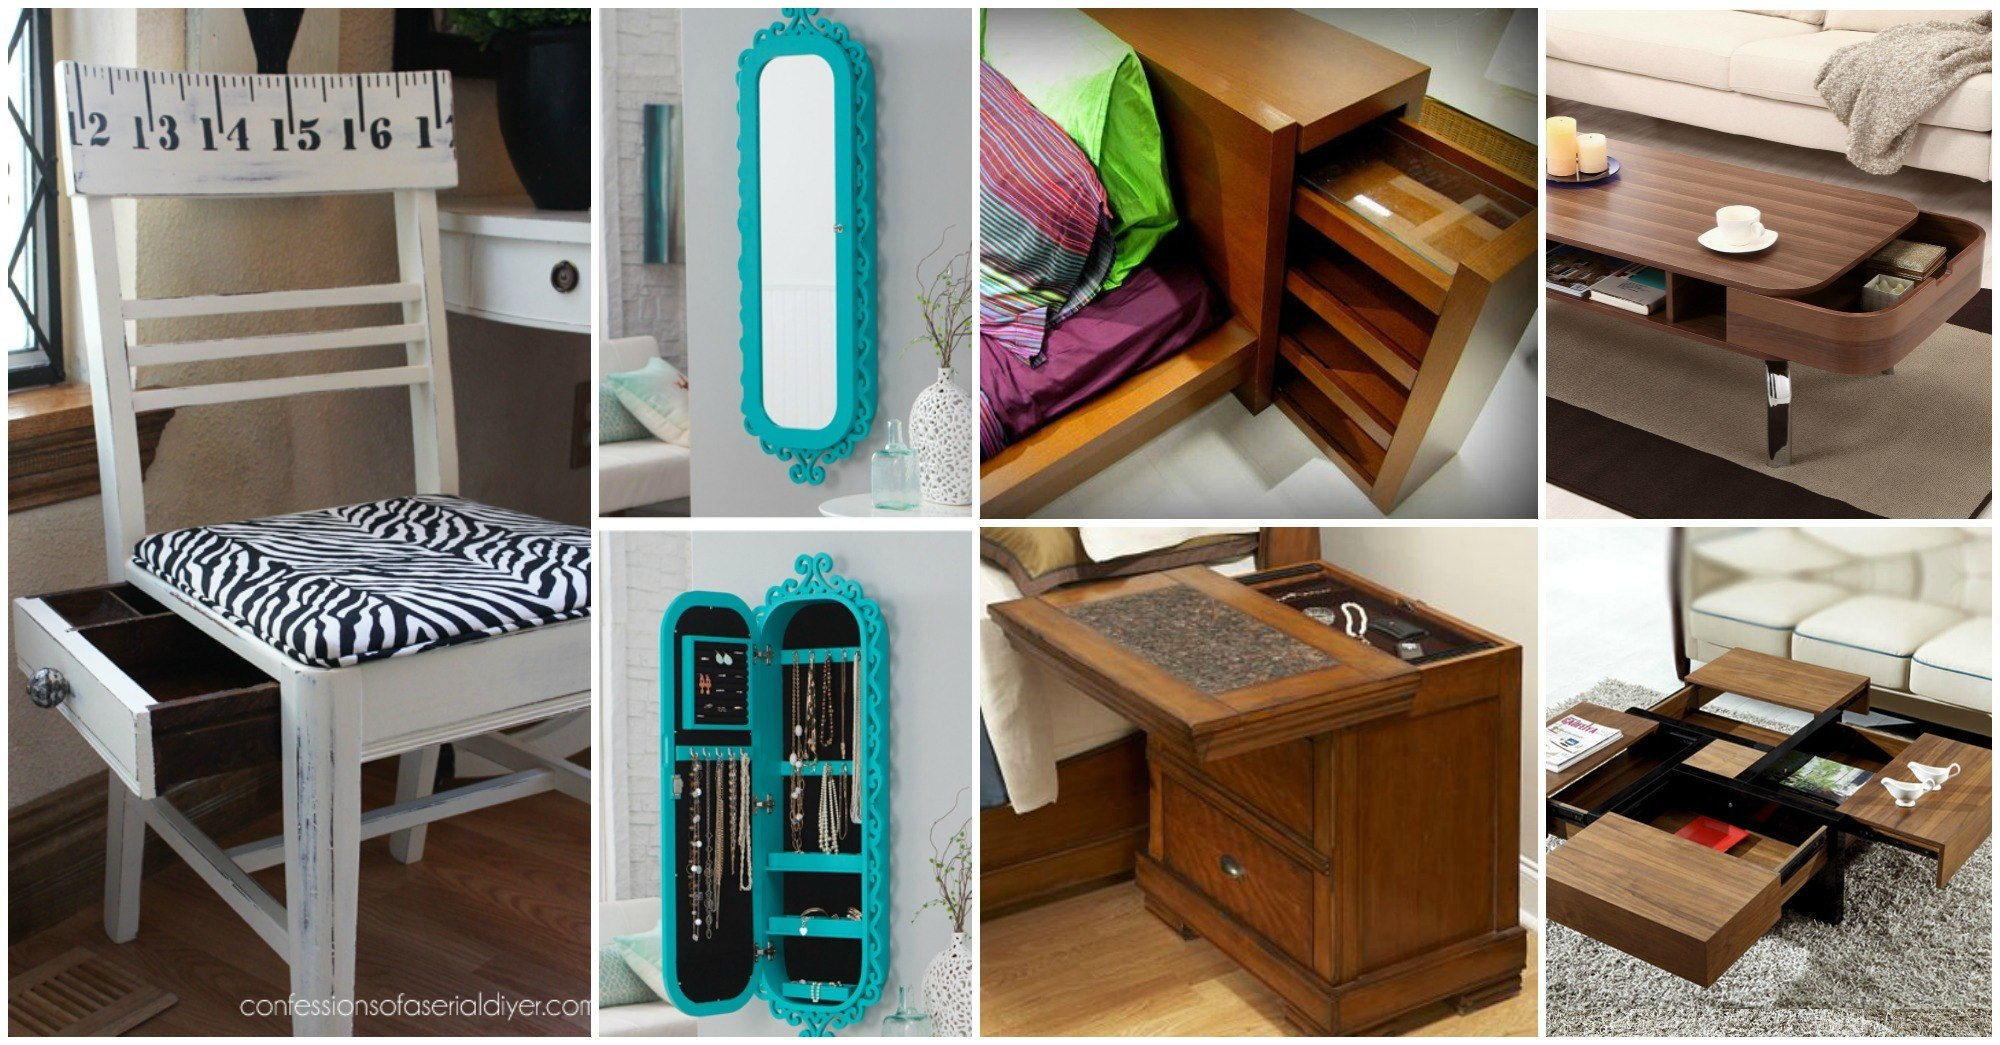 Top secret or space saving furniture ideas check out these genius ideas now